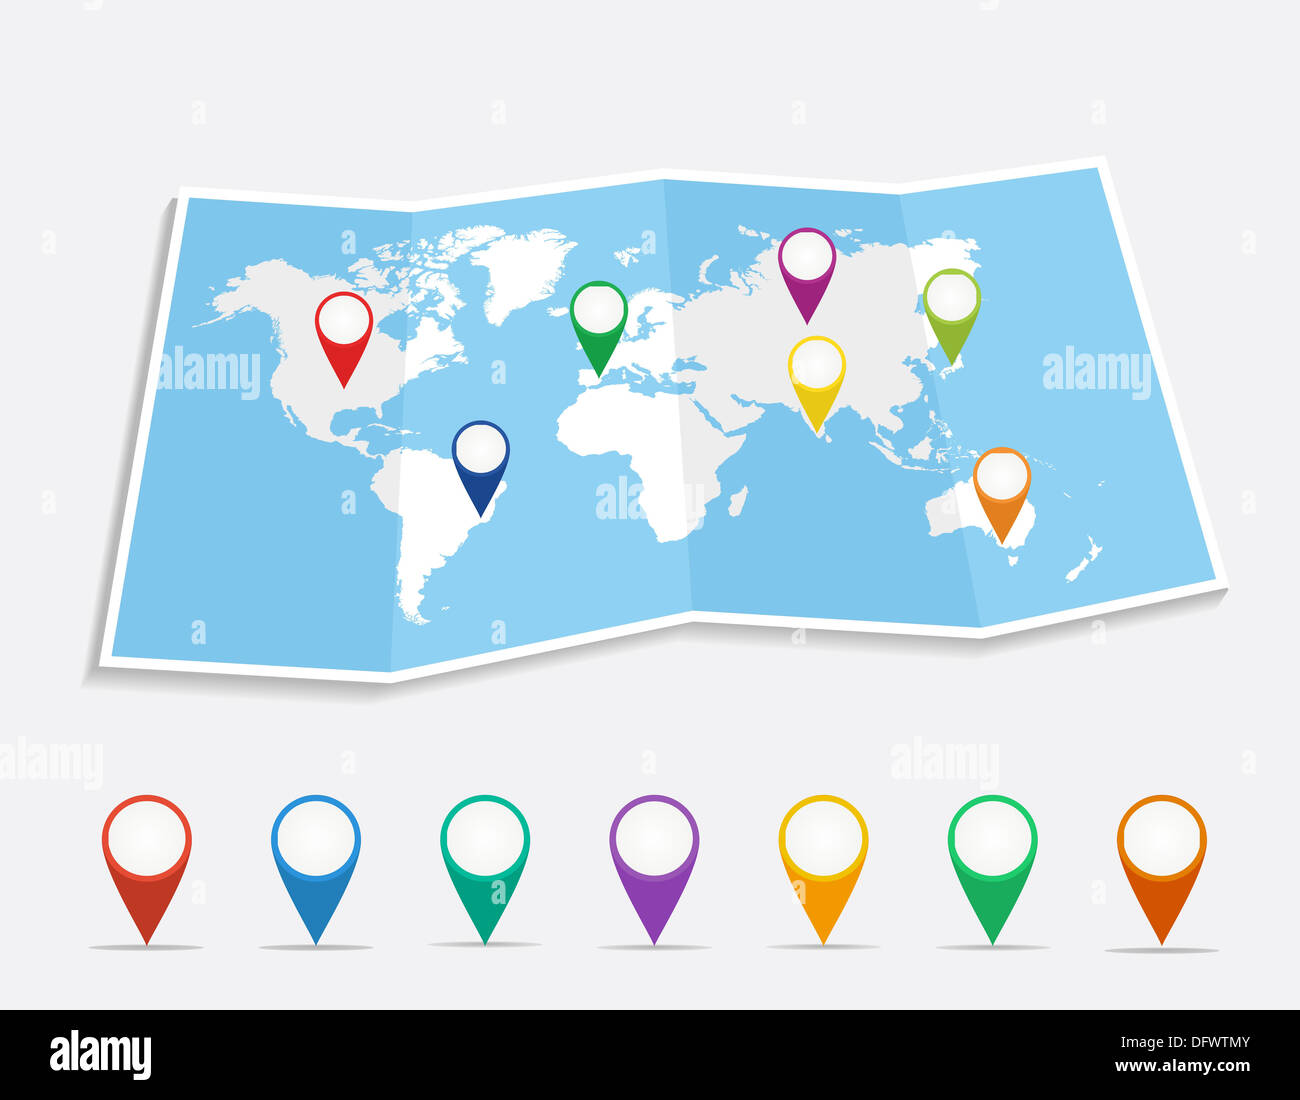 World map with geo position pins travel elements composition. EPS10 vector file organized in layers for easy editing.  - Stock Image